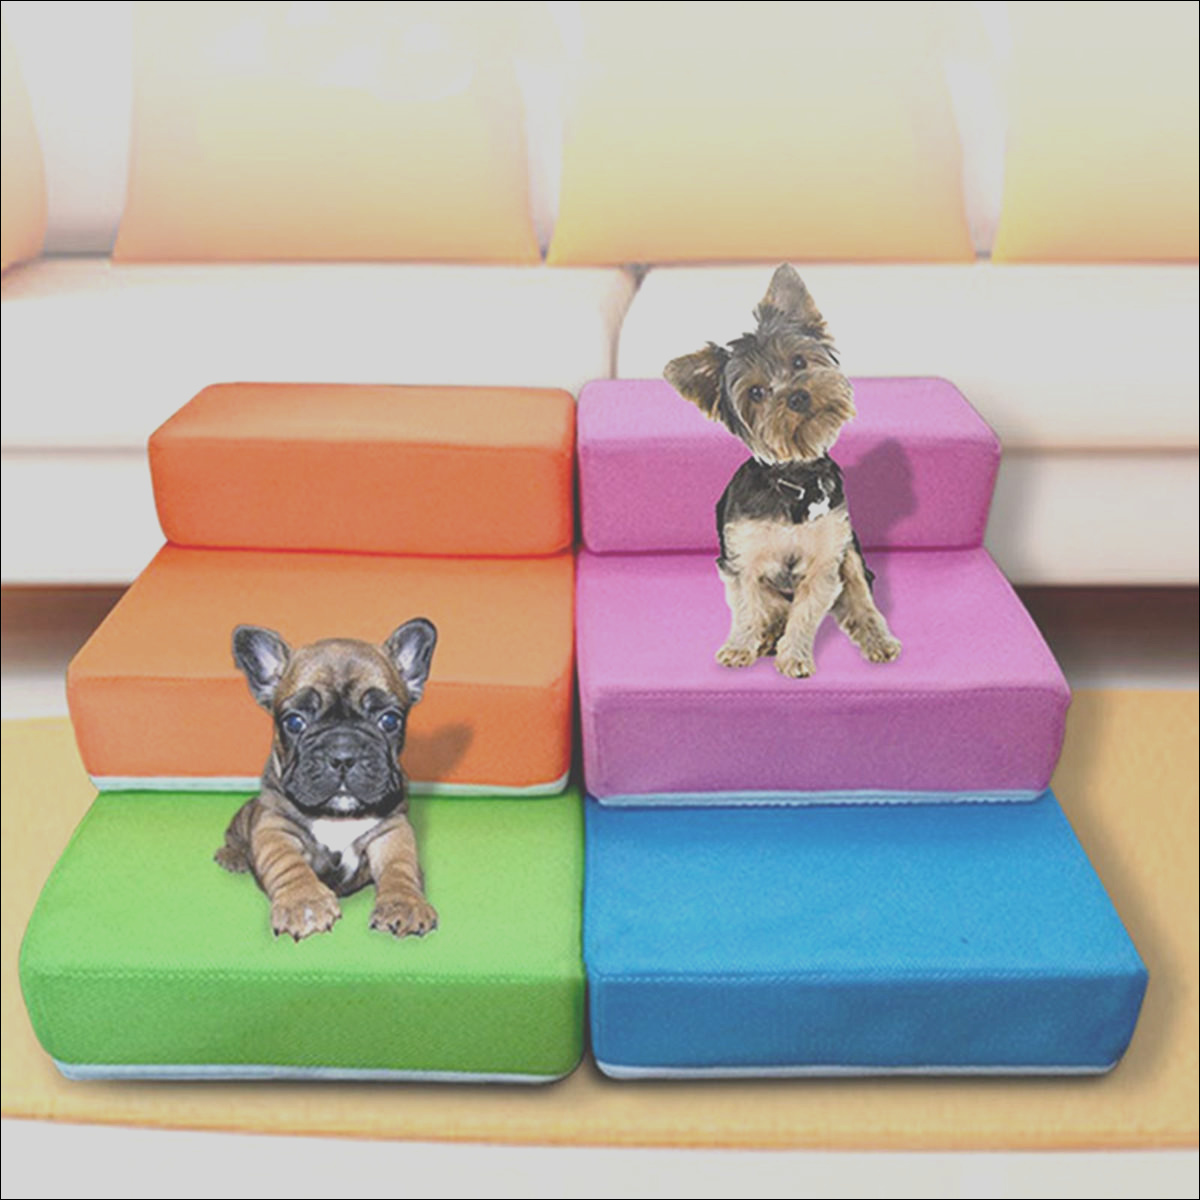 Pet Stair 2 Step Portable Puppy Dog Cat Soft Indoor Sofa Bed Folding Ramp Ladder Pet Bed p